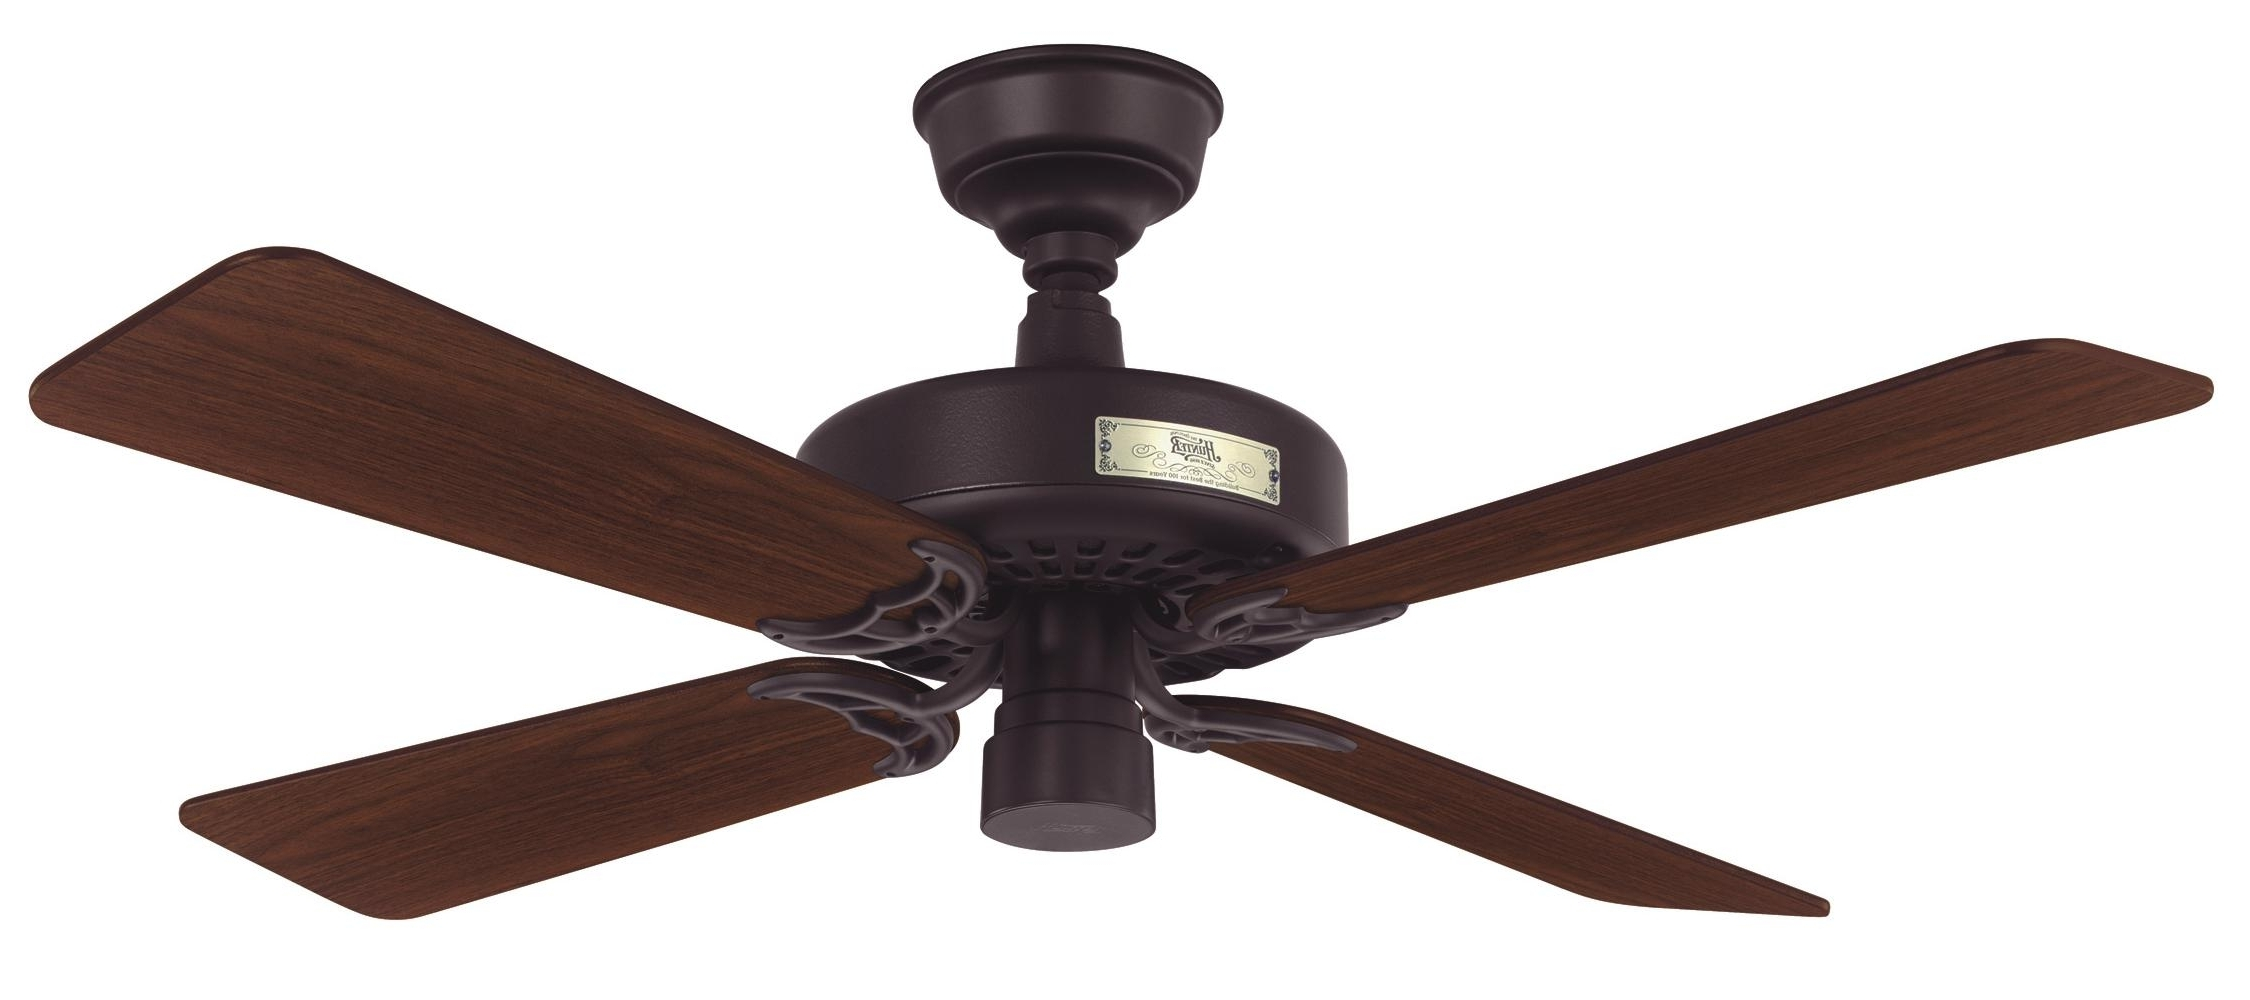 Displaying Gallery Of Lowes Outdoor Ceiling Fans With Lights View 10 Of 20 Photos